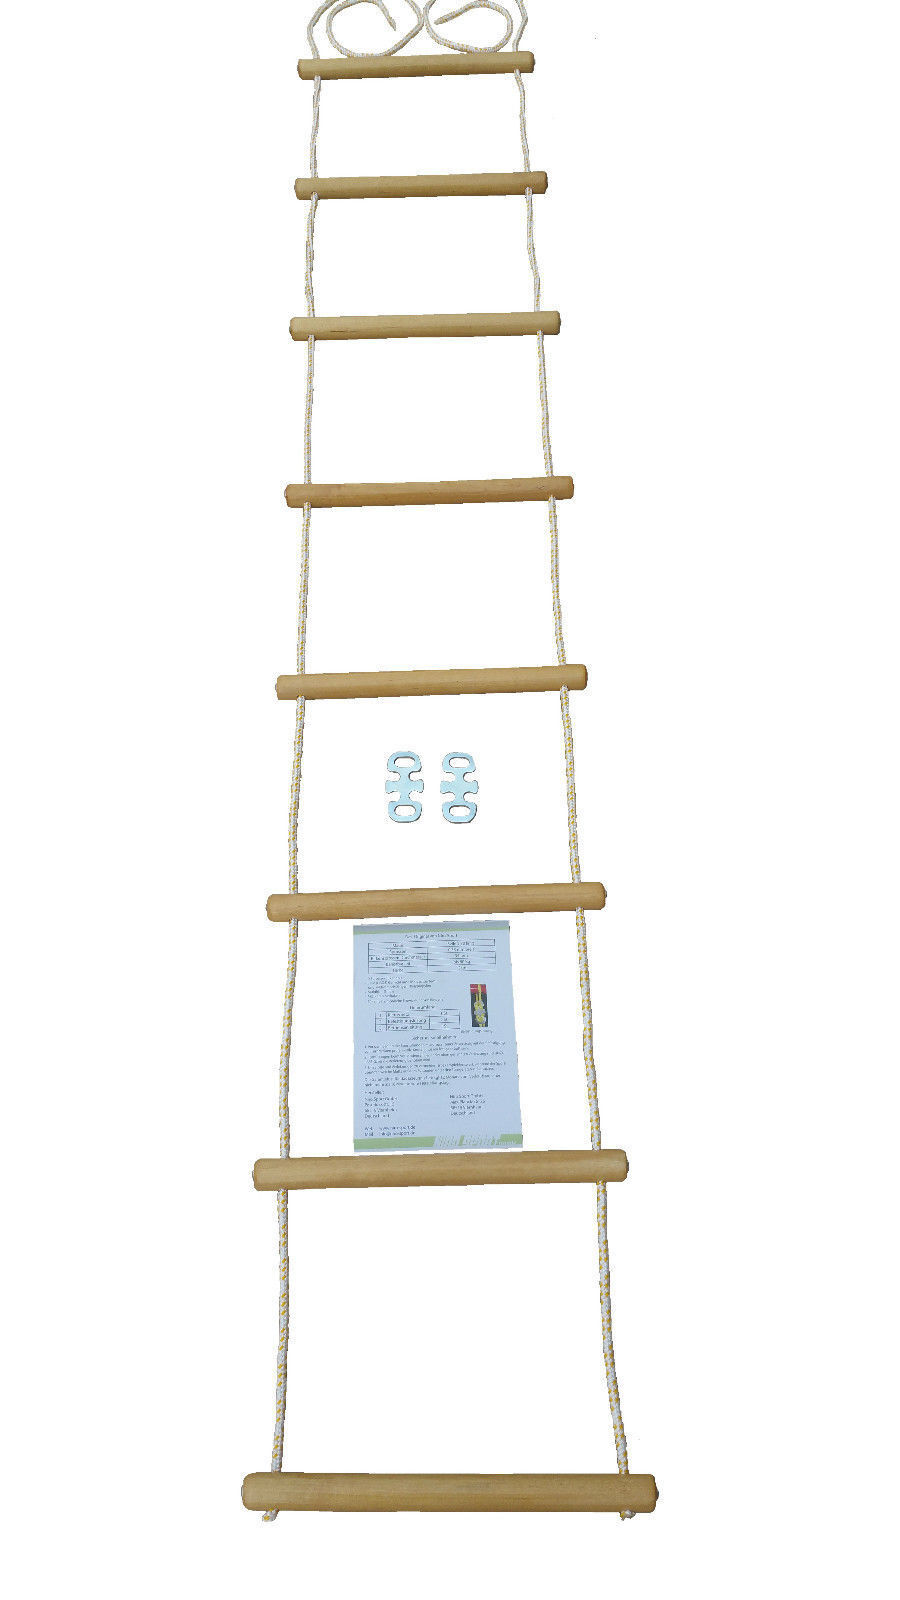 Rope ladder Climbing rope different lengths Wood sprout